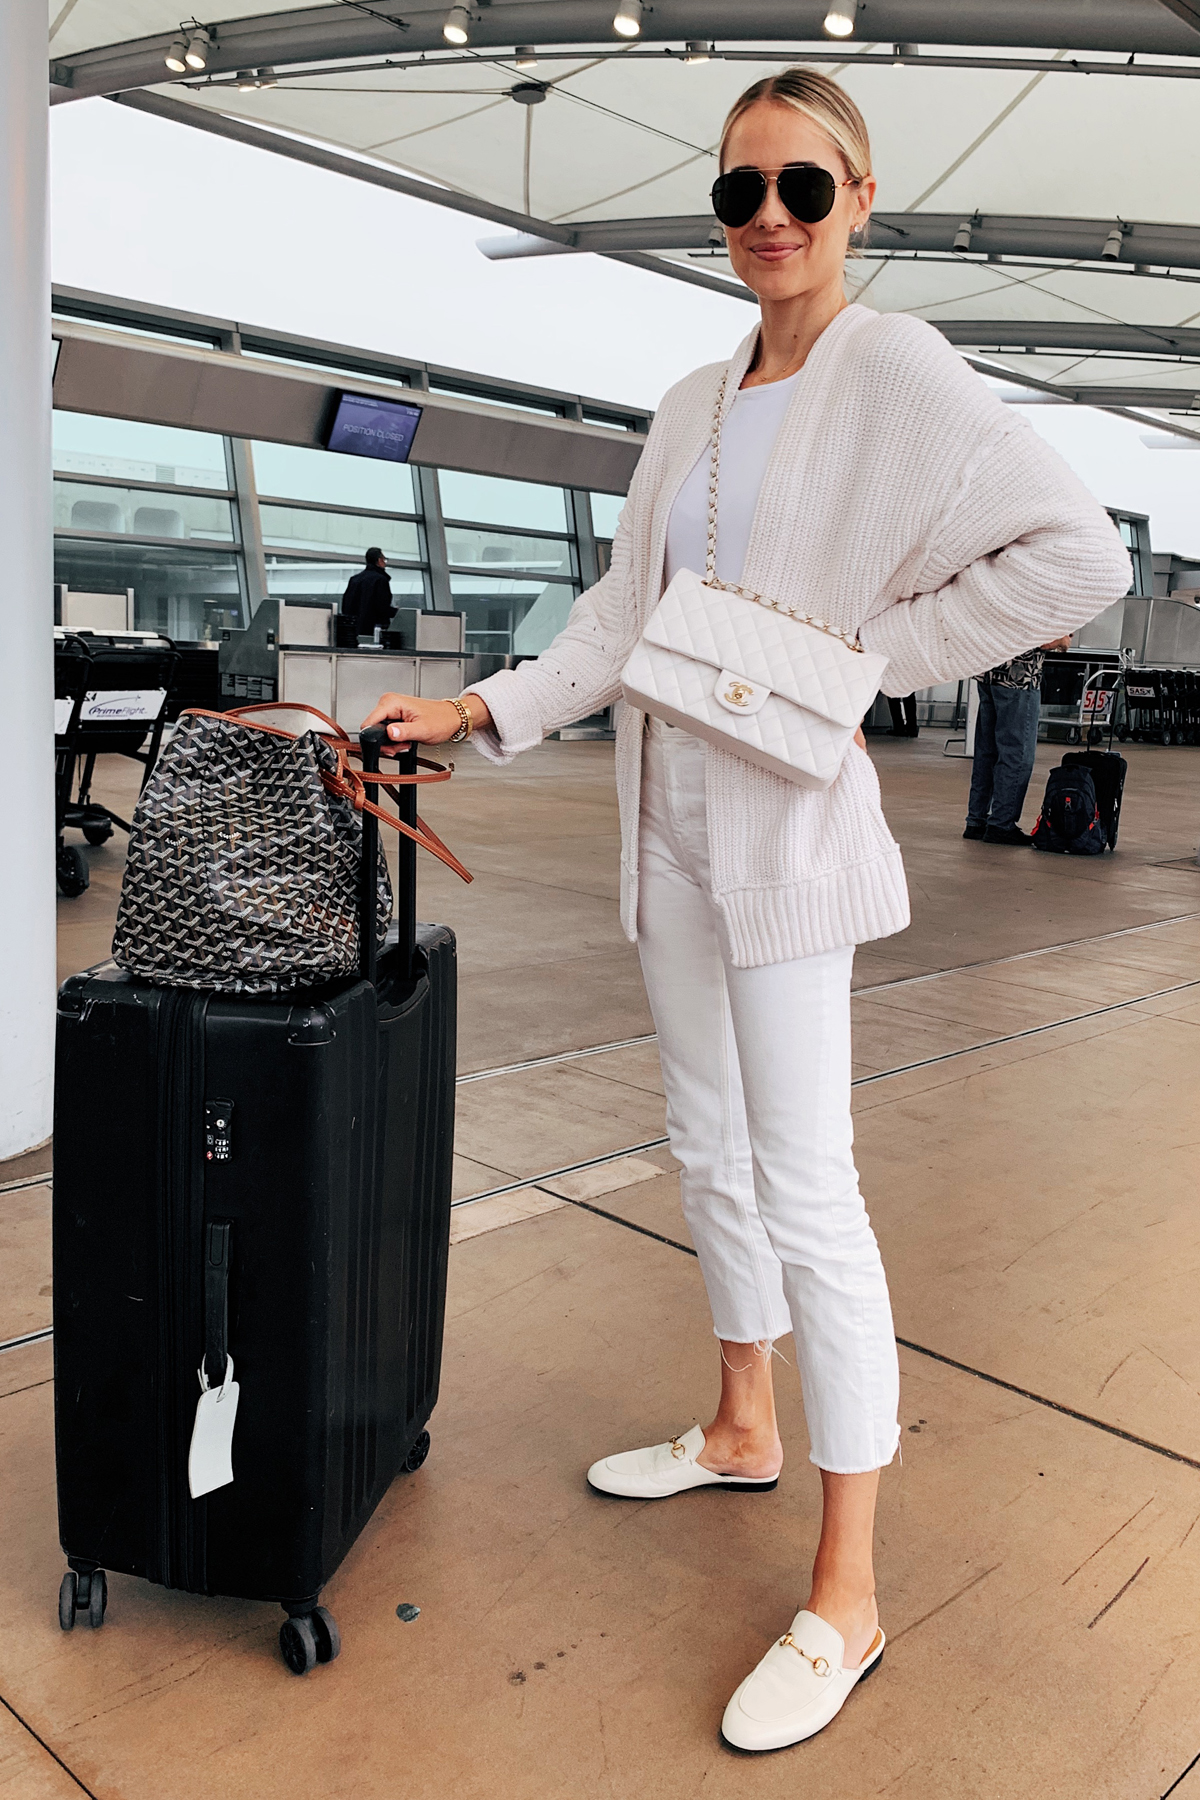 Fashion Jackson Wearing White Cardigan White Bodysuit White Cropped Jeans White Gucci Mules White Chanel Handbag Calpak Luggage Goyard Tote Travel Outfit Airport Outfit